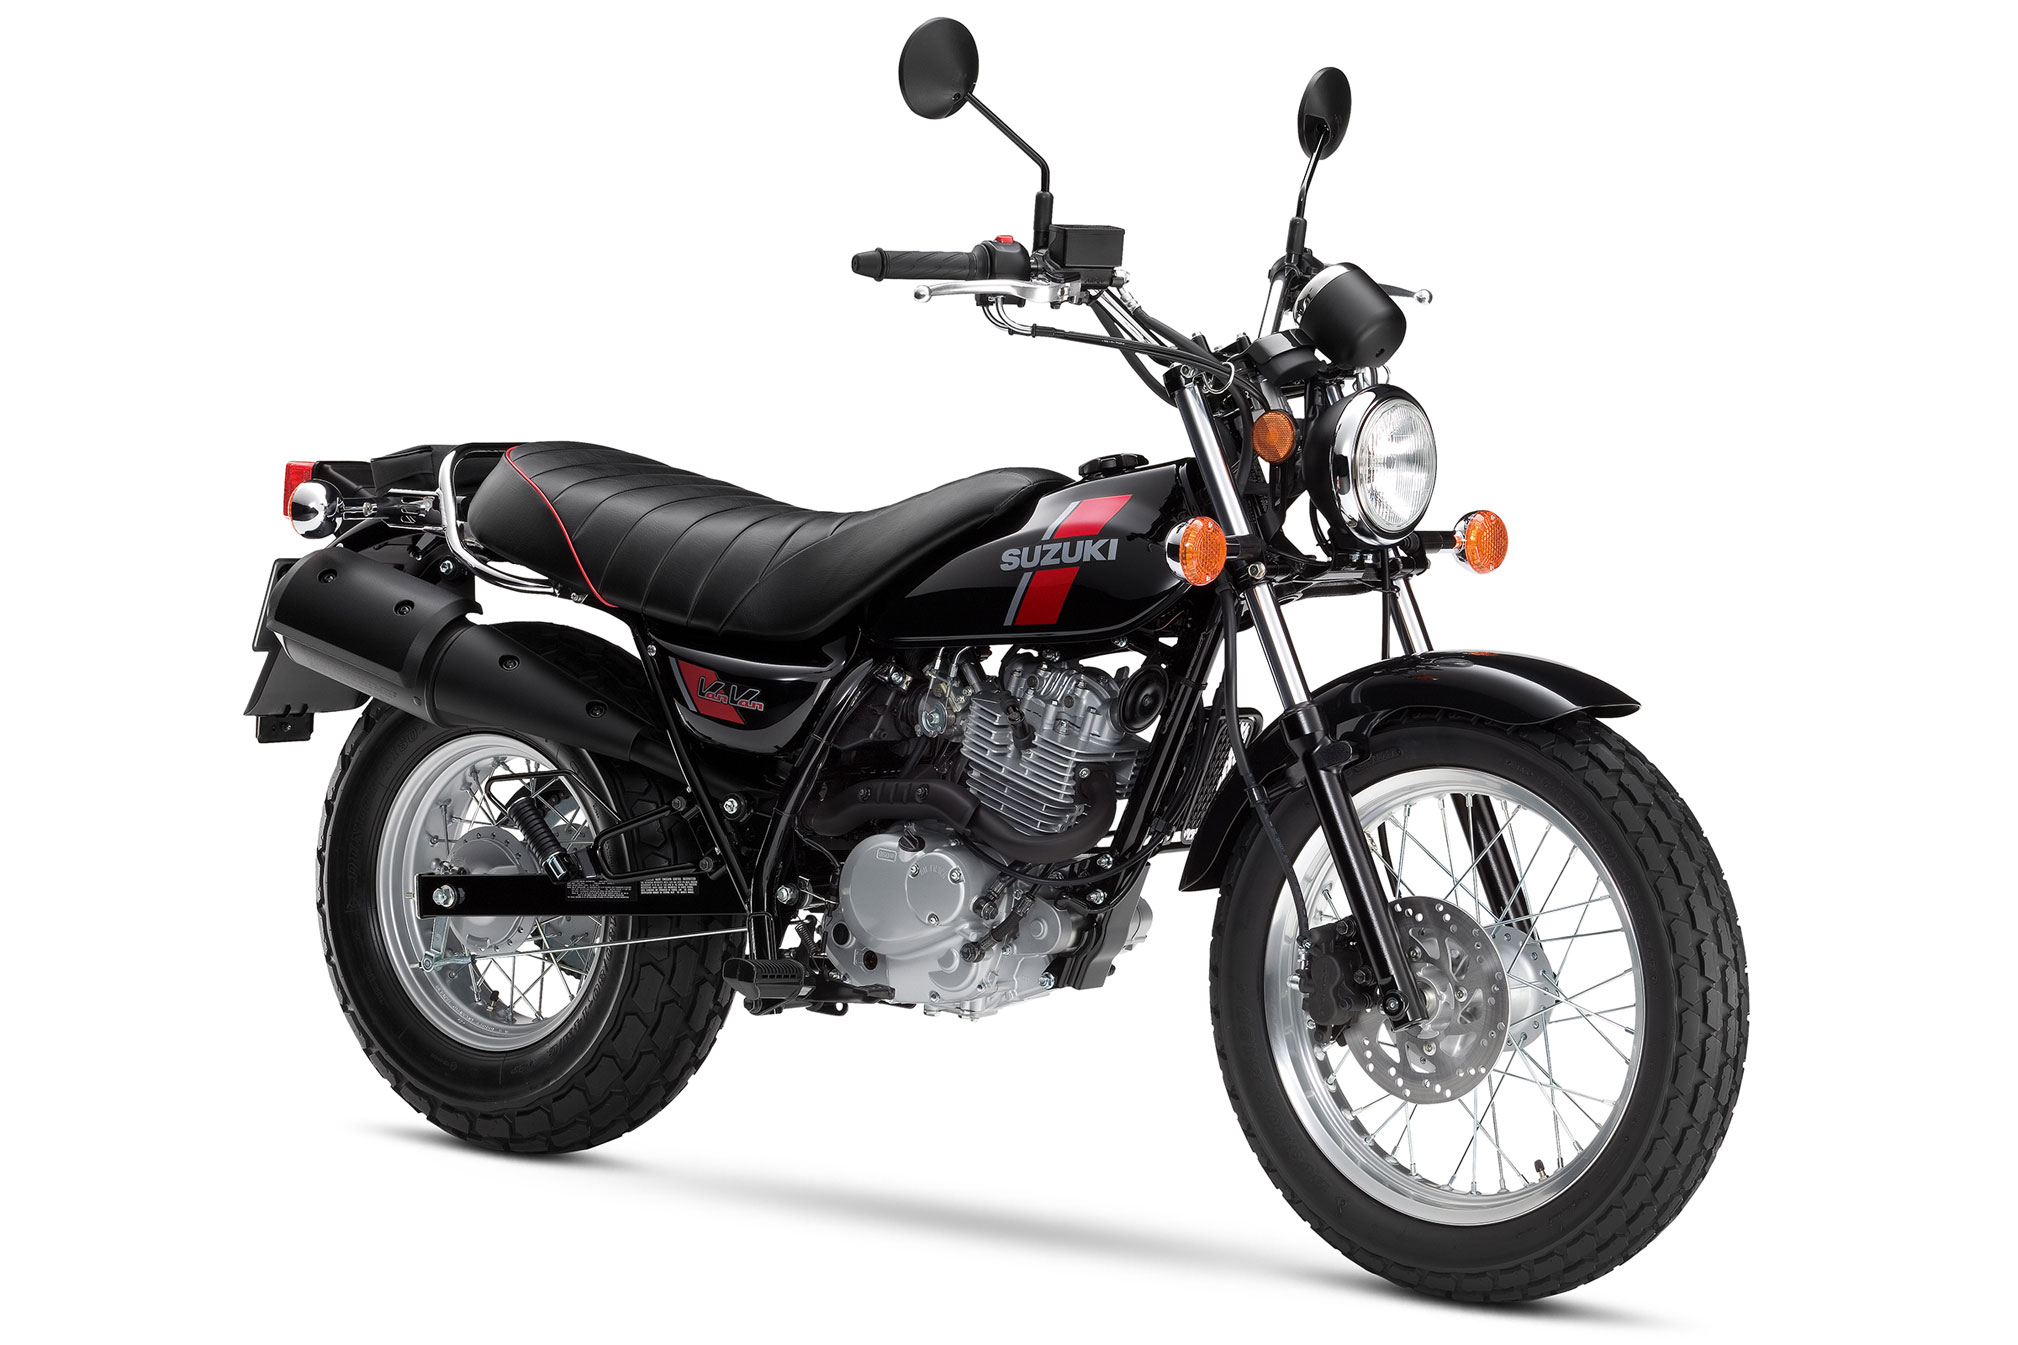 2018 Suzuki VanVan 200 Review Total Motorcycle